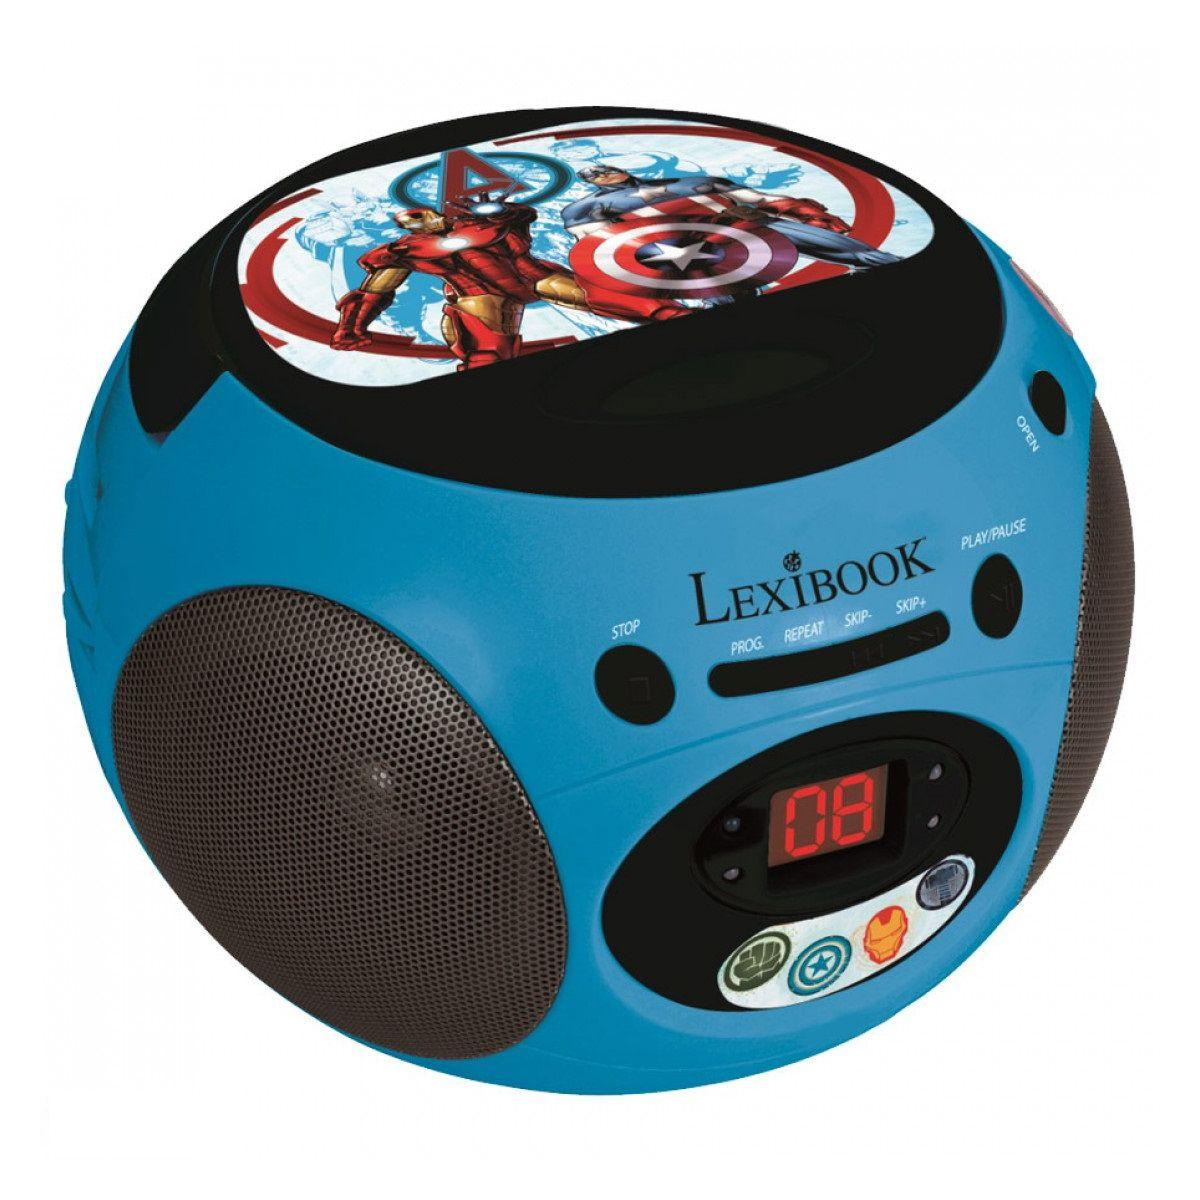 Radio cd lexibook rcd102av the avengers - 2% de remise imm?dia...